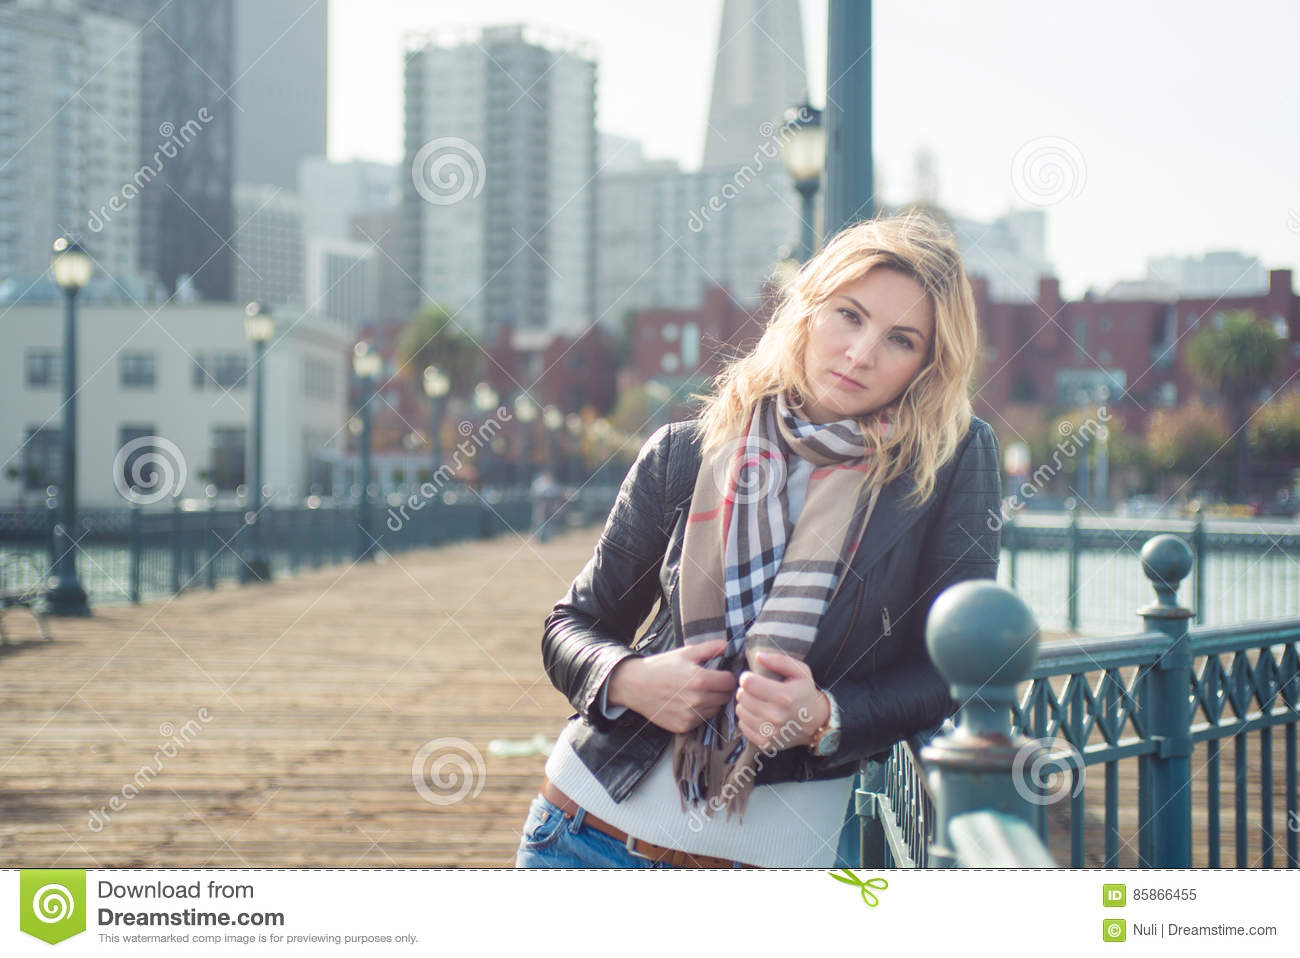 Young confident attractive woman on wooden bridge